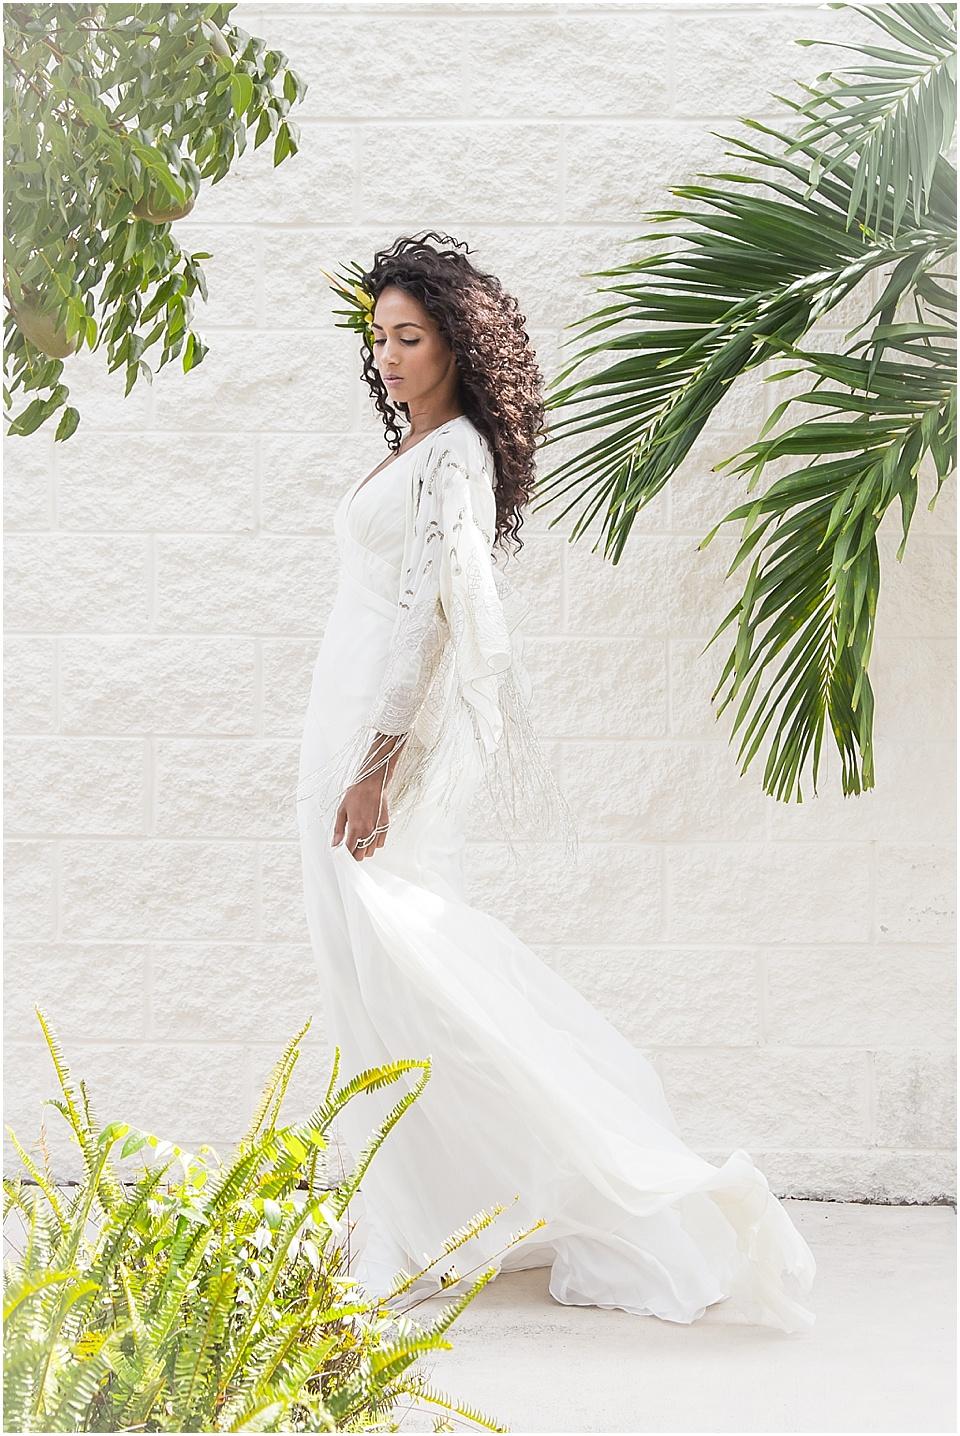 Island-Bridal-One-Perfect-Event-Photography-www.nubride.com_0777.jpg